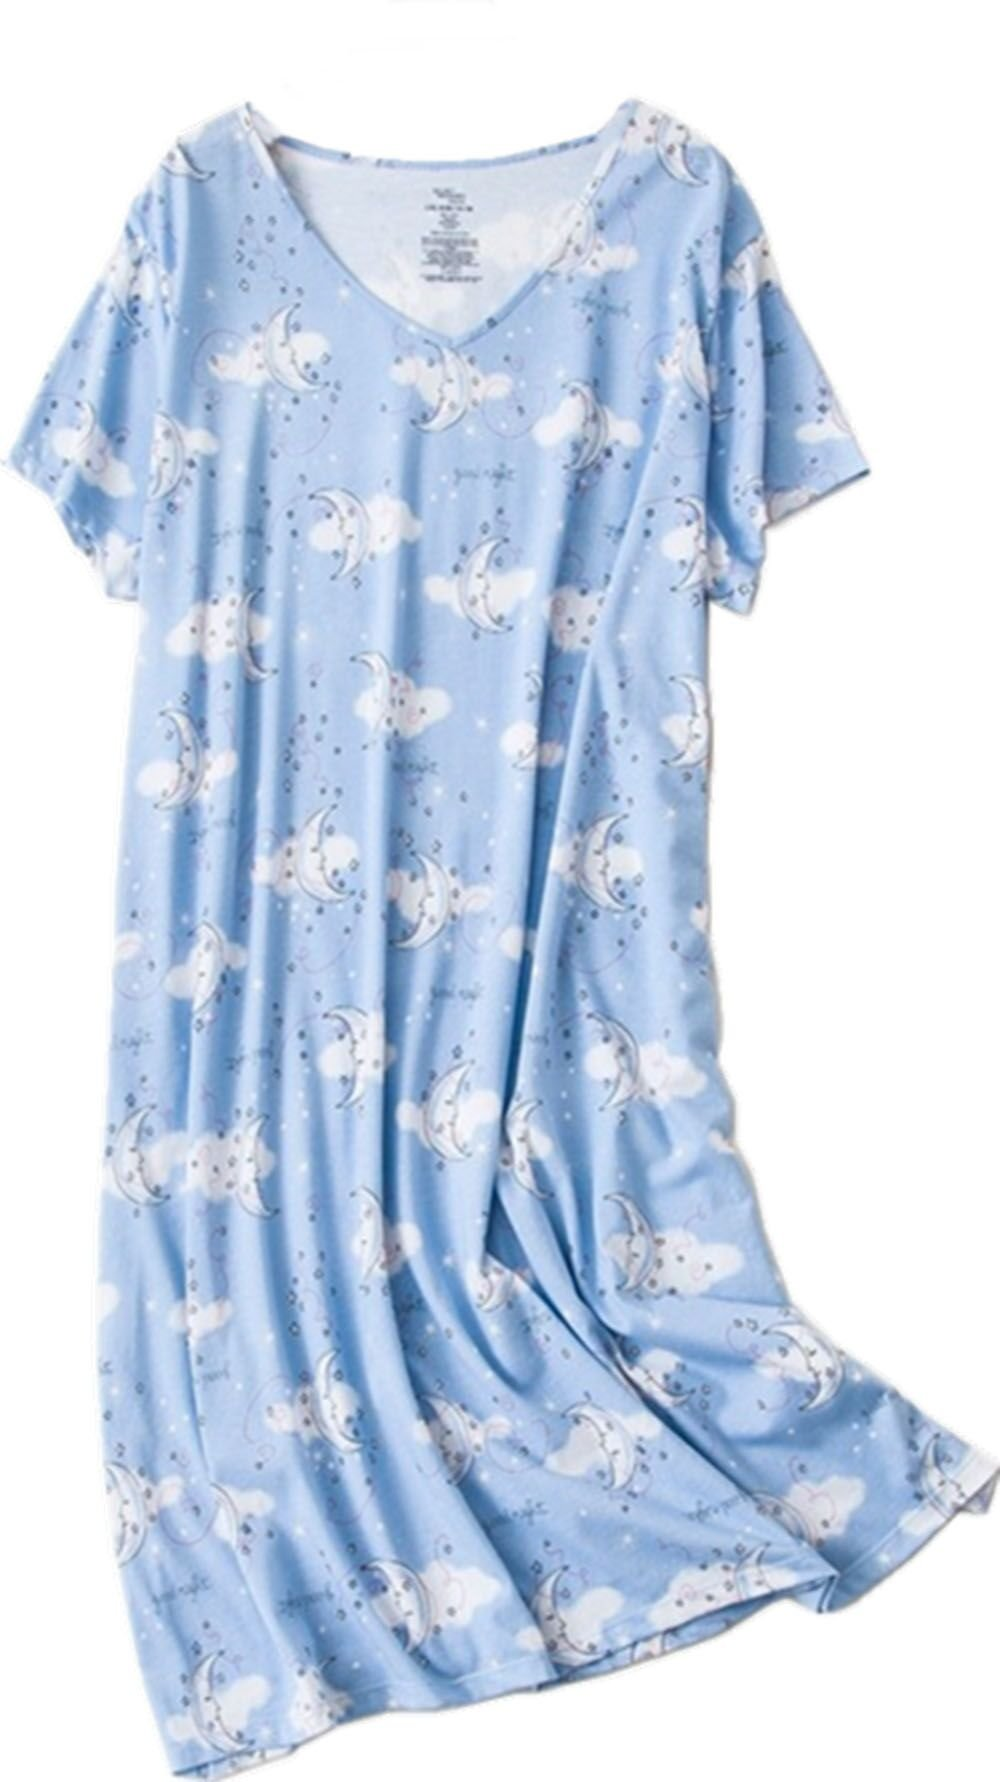 Amoy madrola Women's Cotton Blend Floral Nightgown Casual Nights XTSY108-Cloud Moon-M